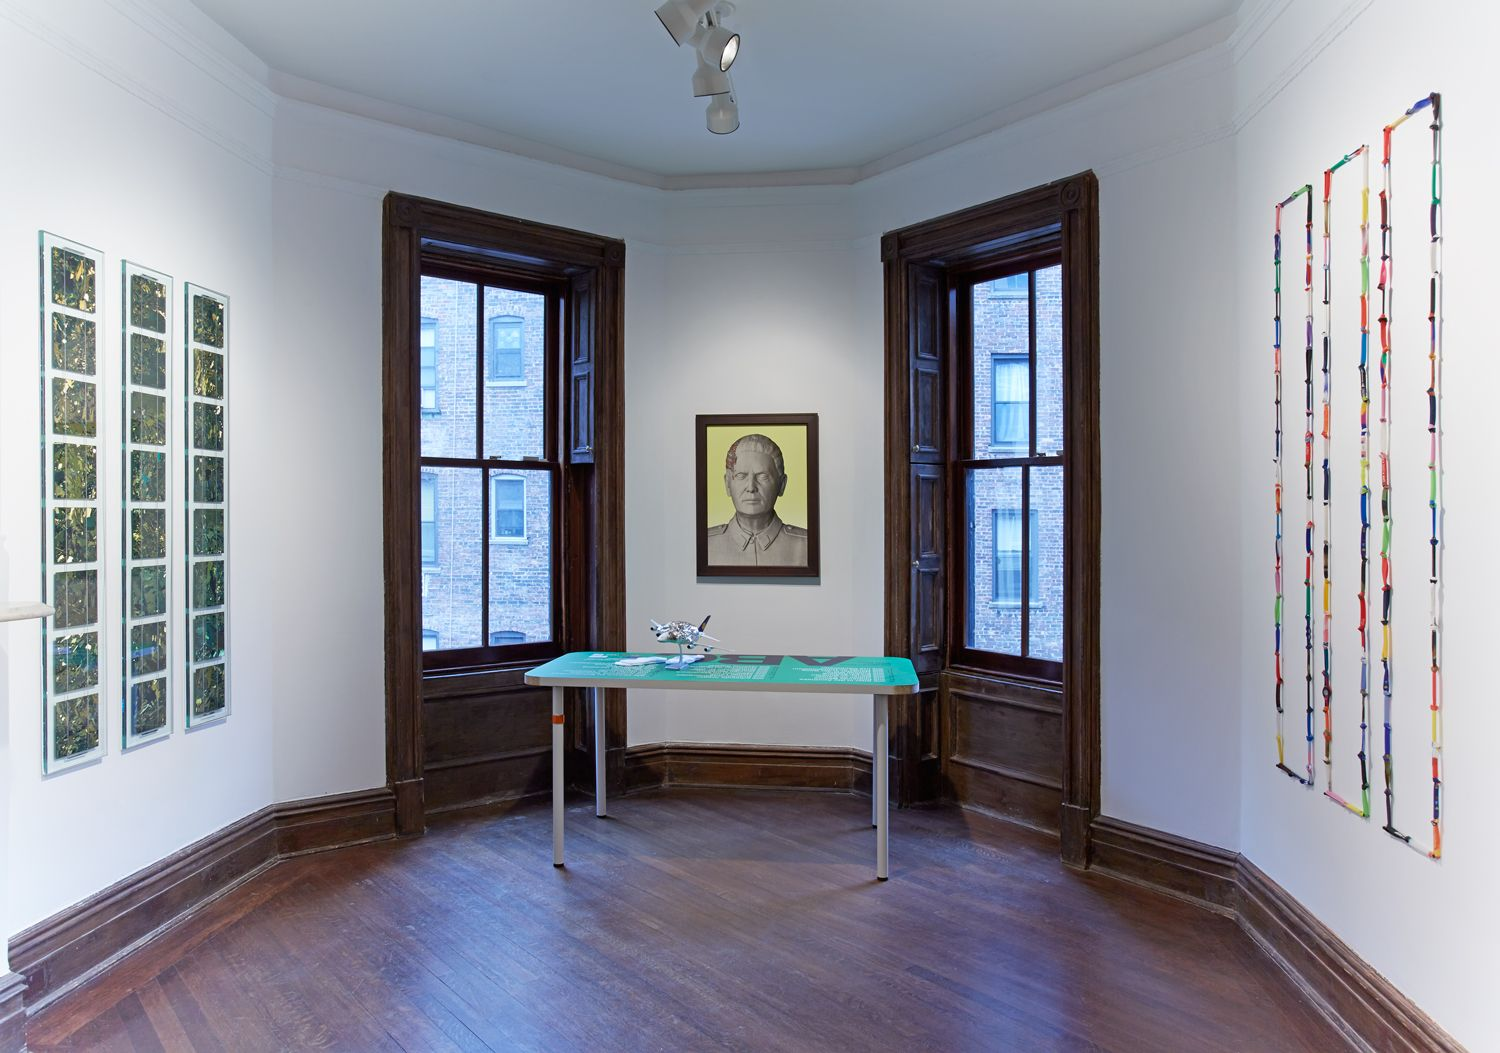 Out of Memory (Installation View), Marianne Boesky Gallery, Uptown, 2013